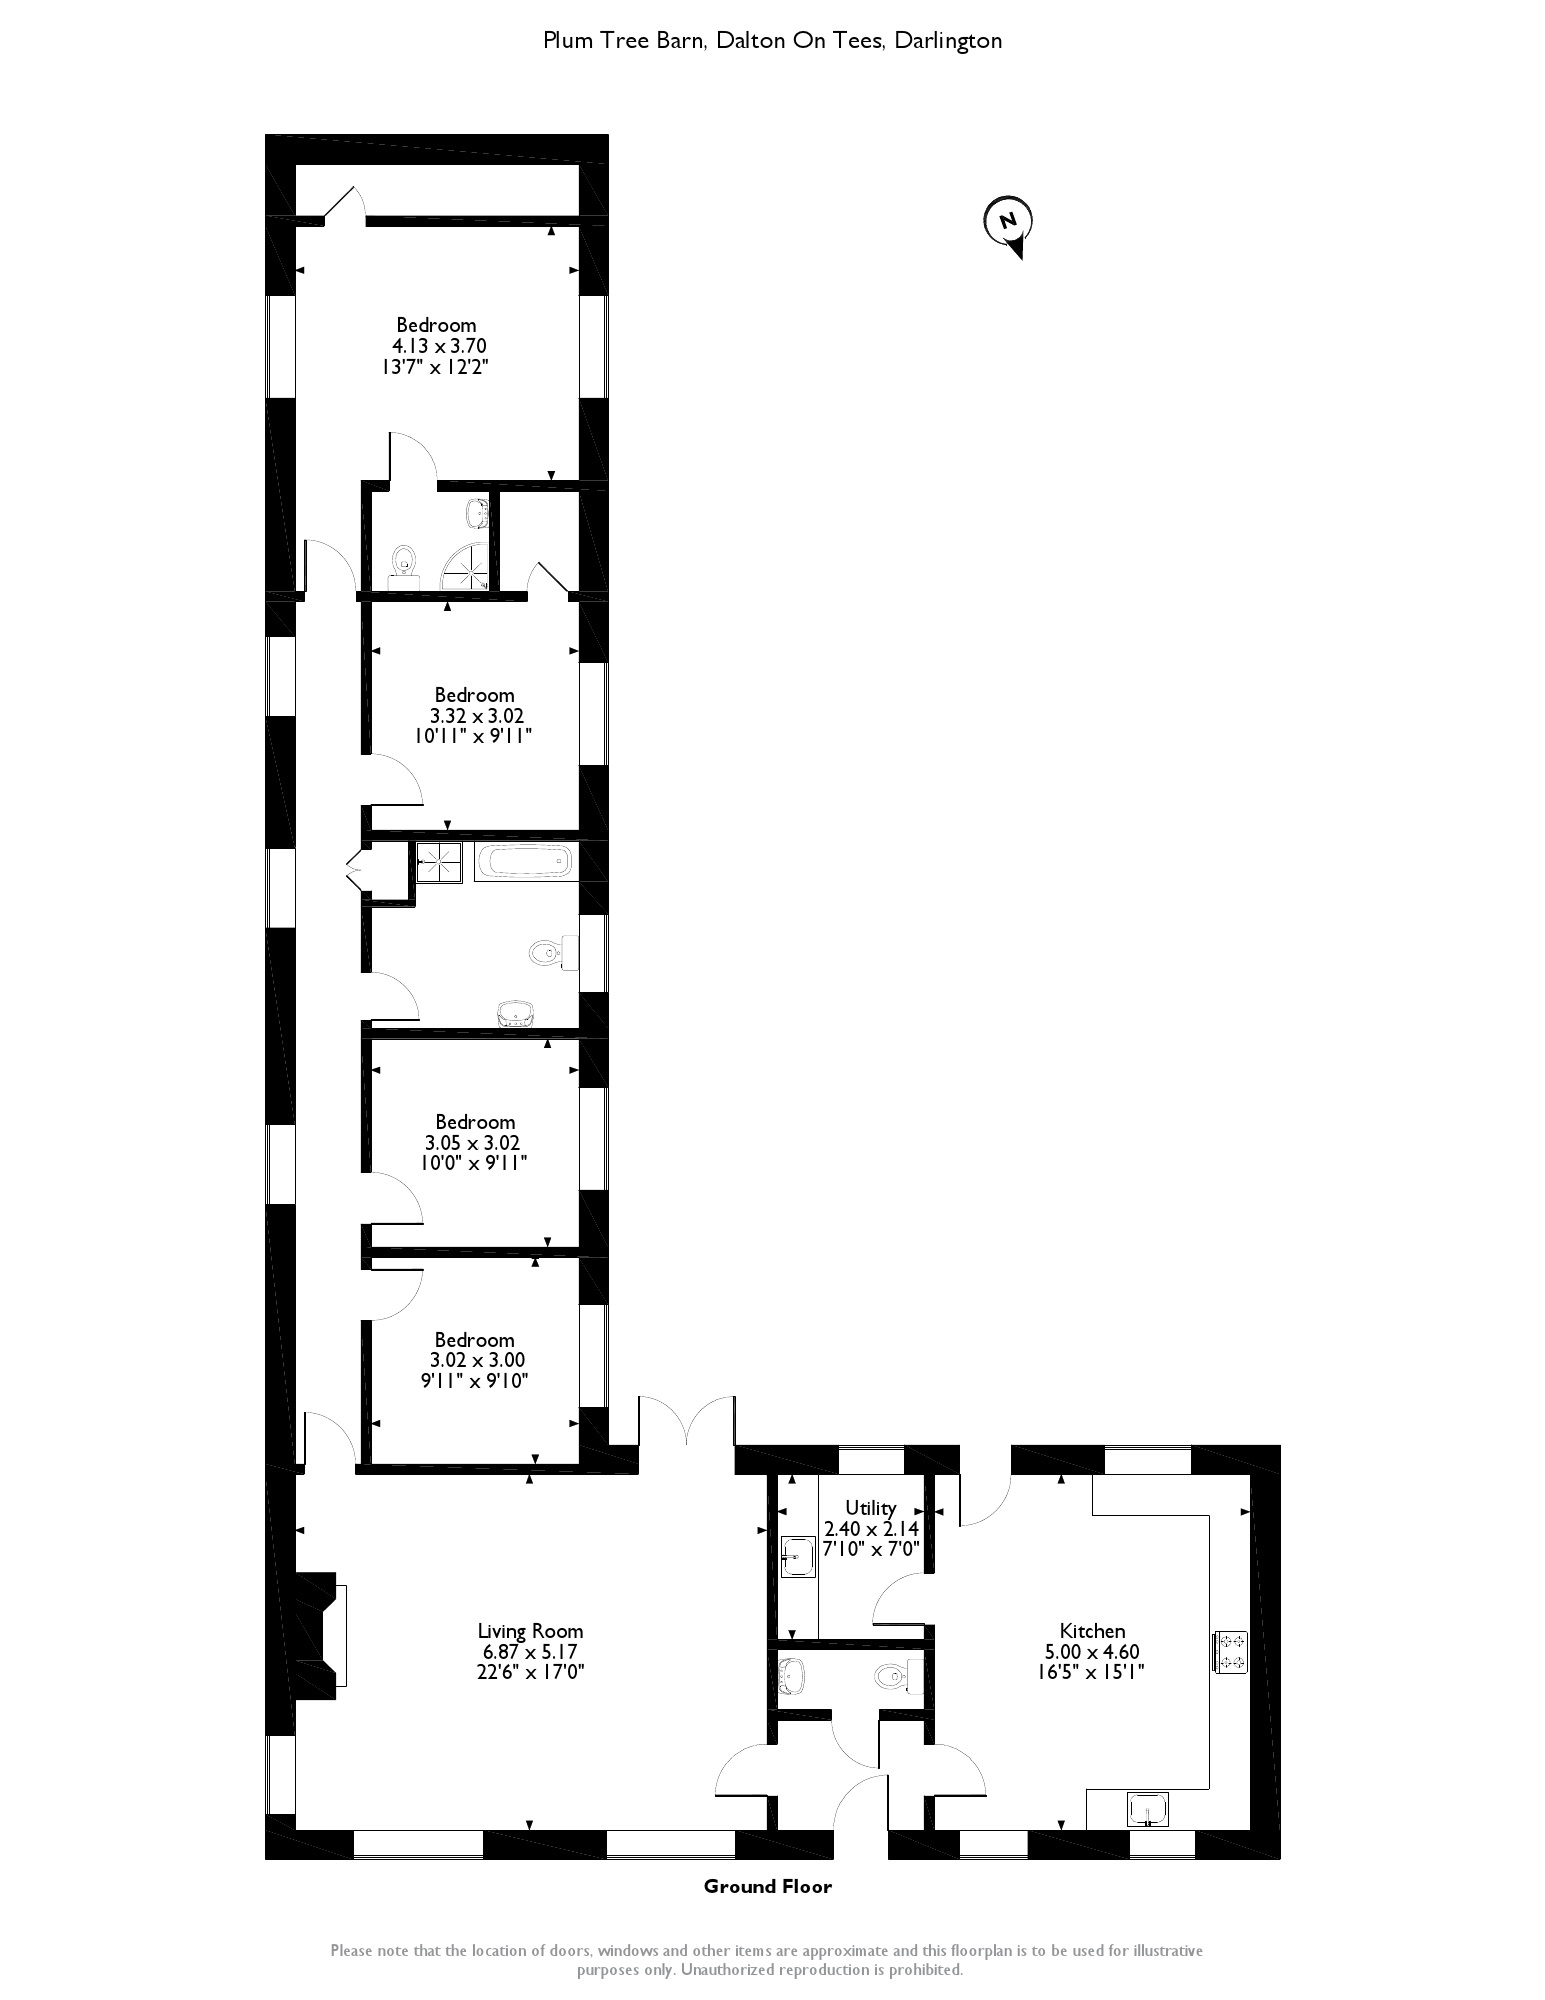 Plum Tree Barn, Dalton on  Tees, Darlington, DL2 floor plan